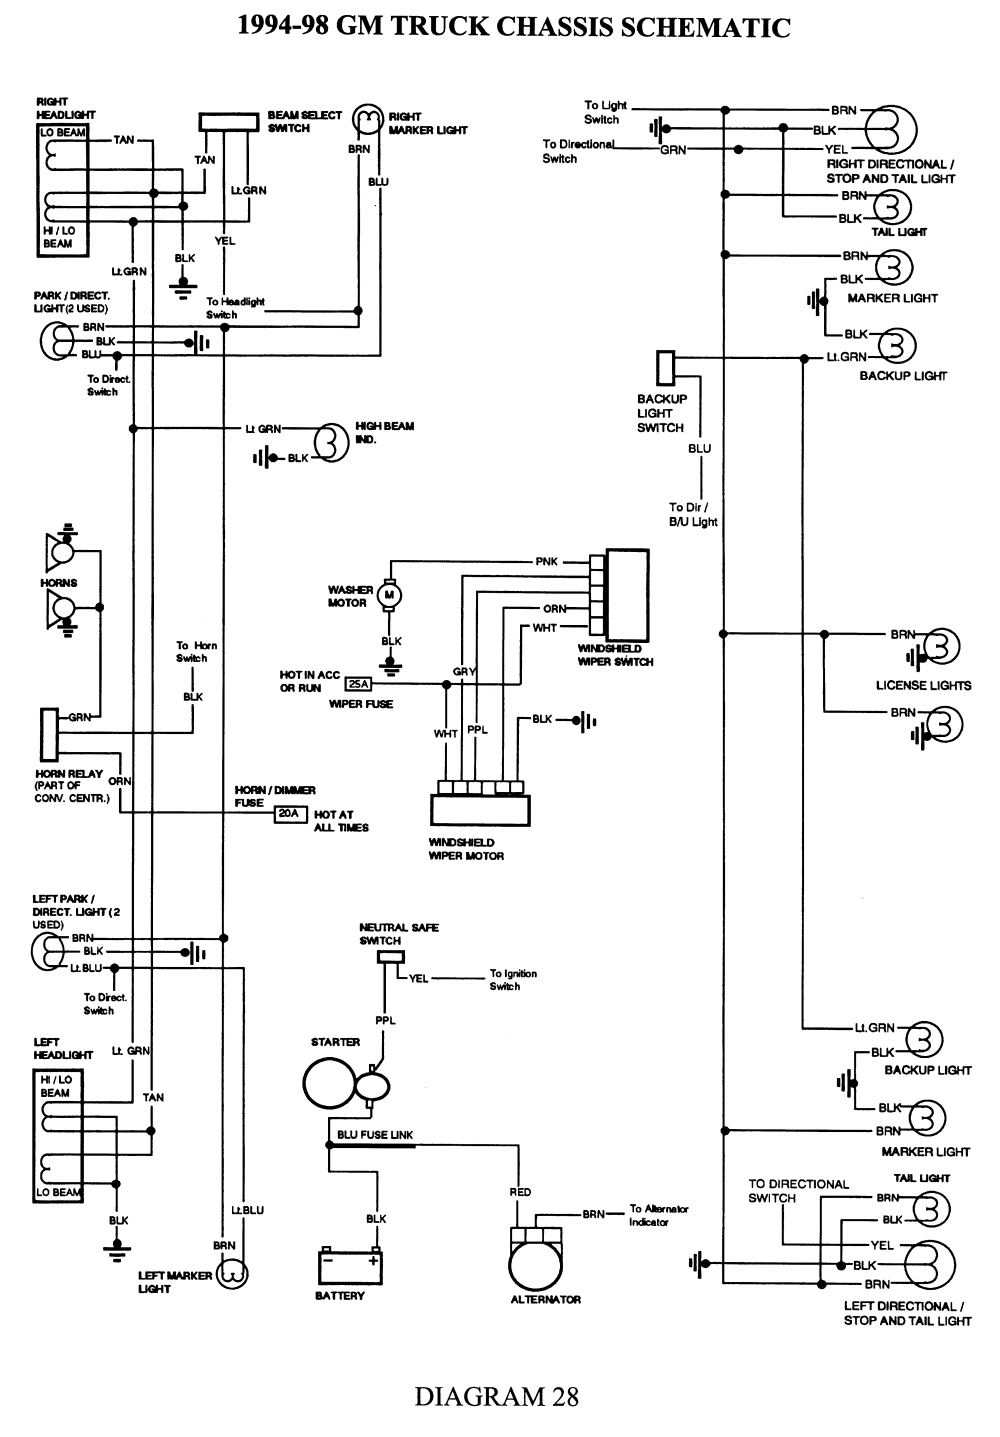 95 s10 wiring diagram information of wiring diagram u2022 rh kimskloset co 2003  S10 Wiring Diagram S10 Wiring Harness Diagram